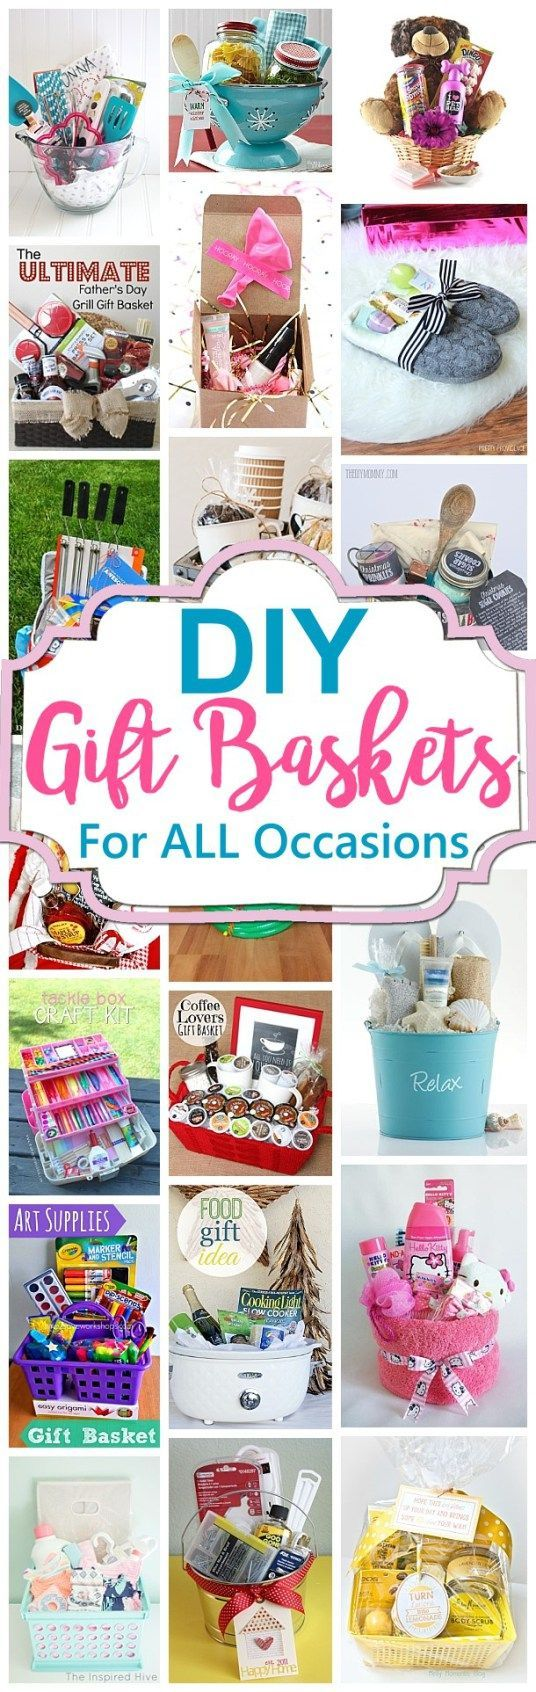 Birthday Gifts Inspiration Do It Yourself Gift Baskets Ideas For